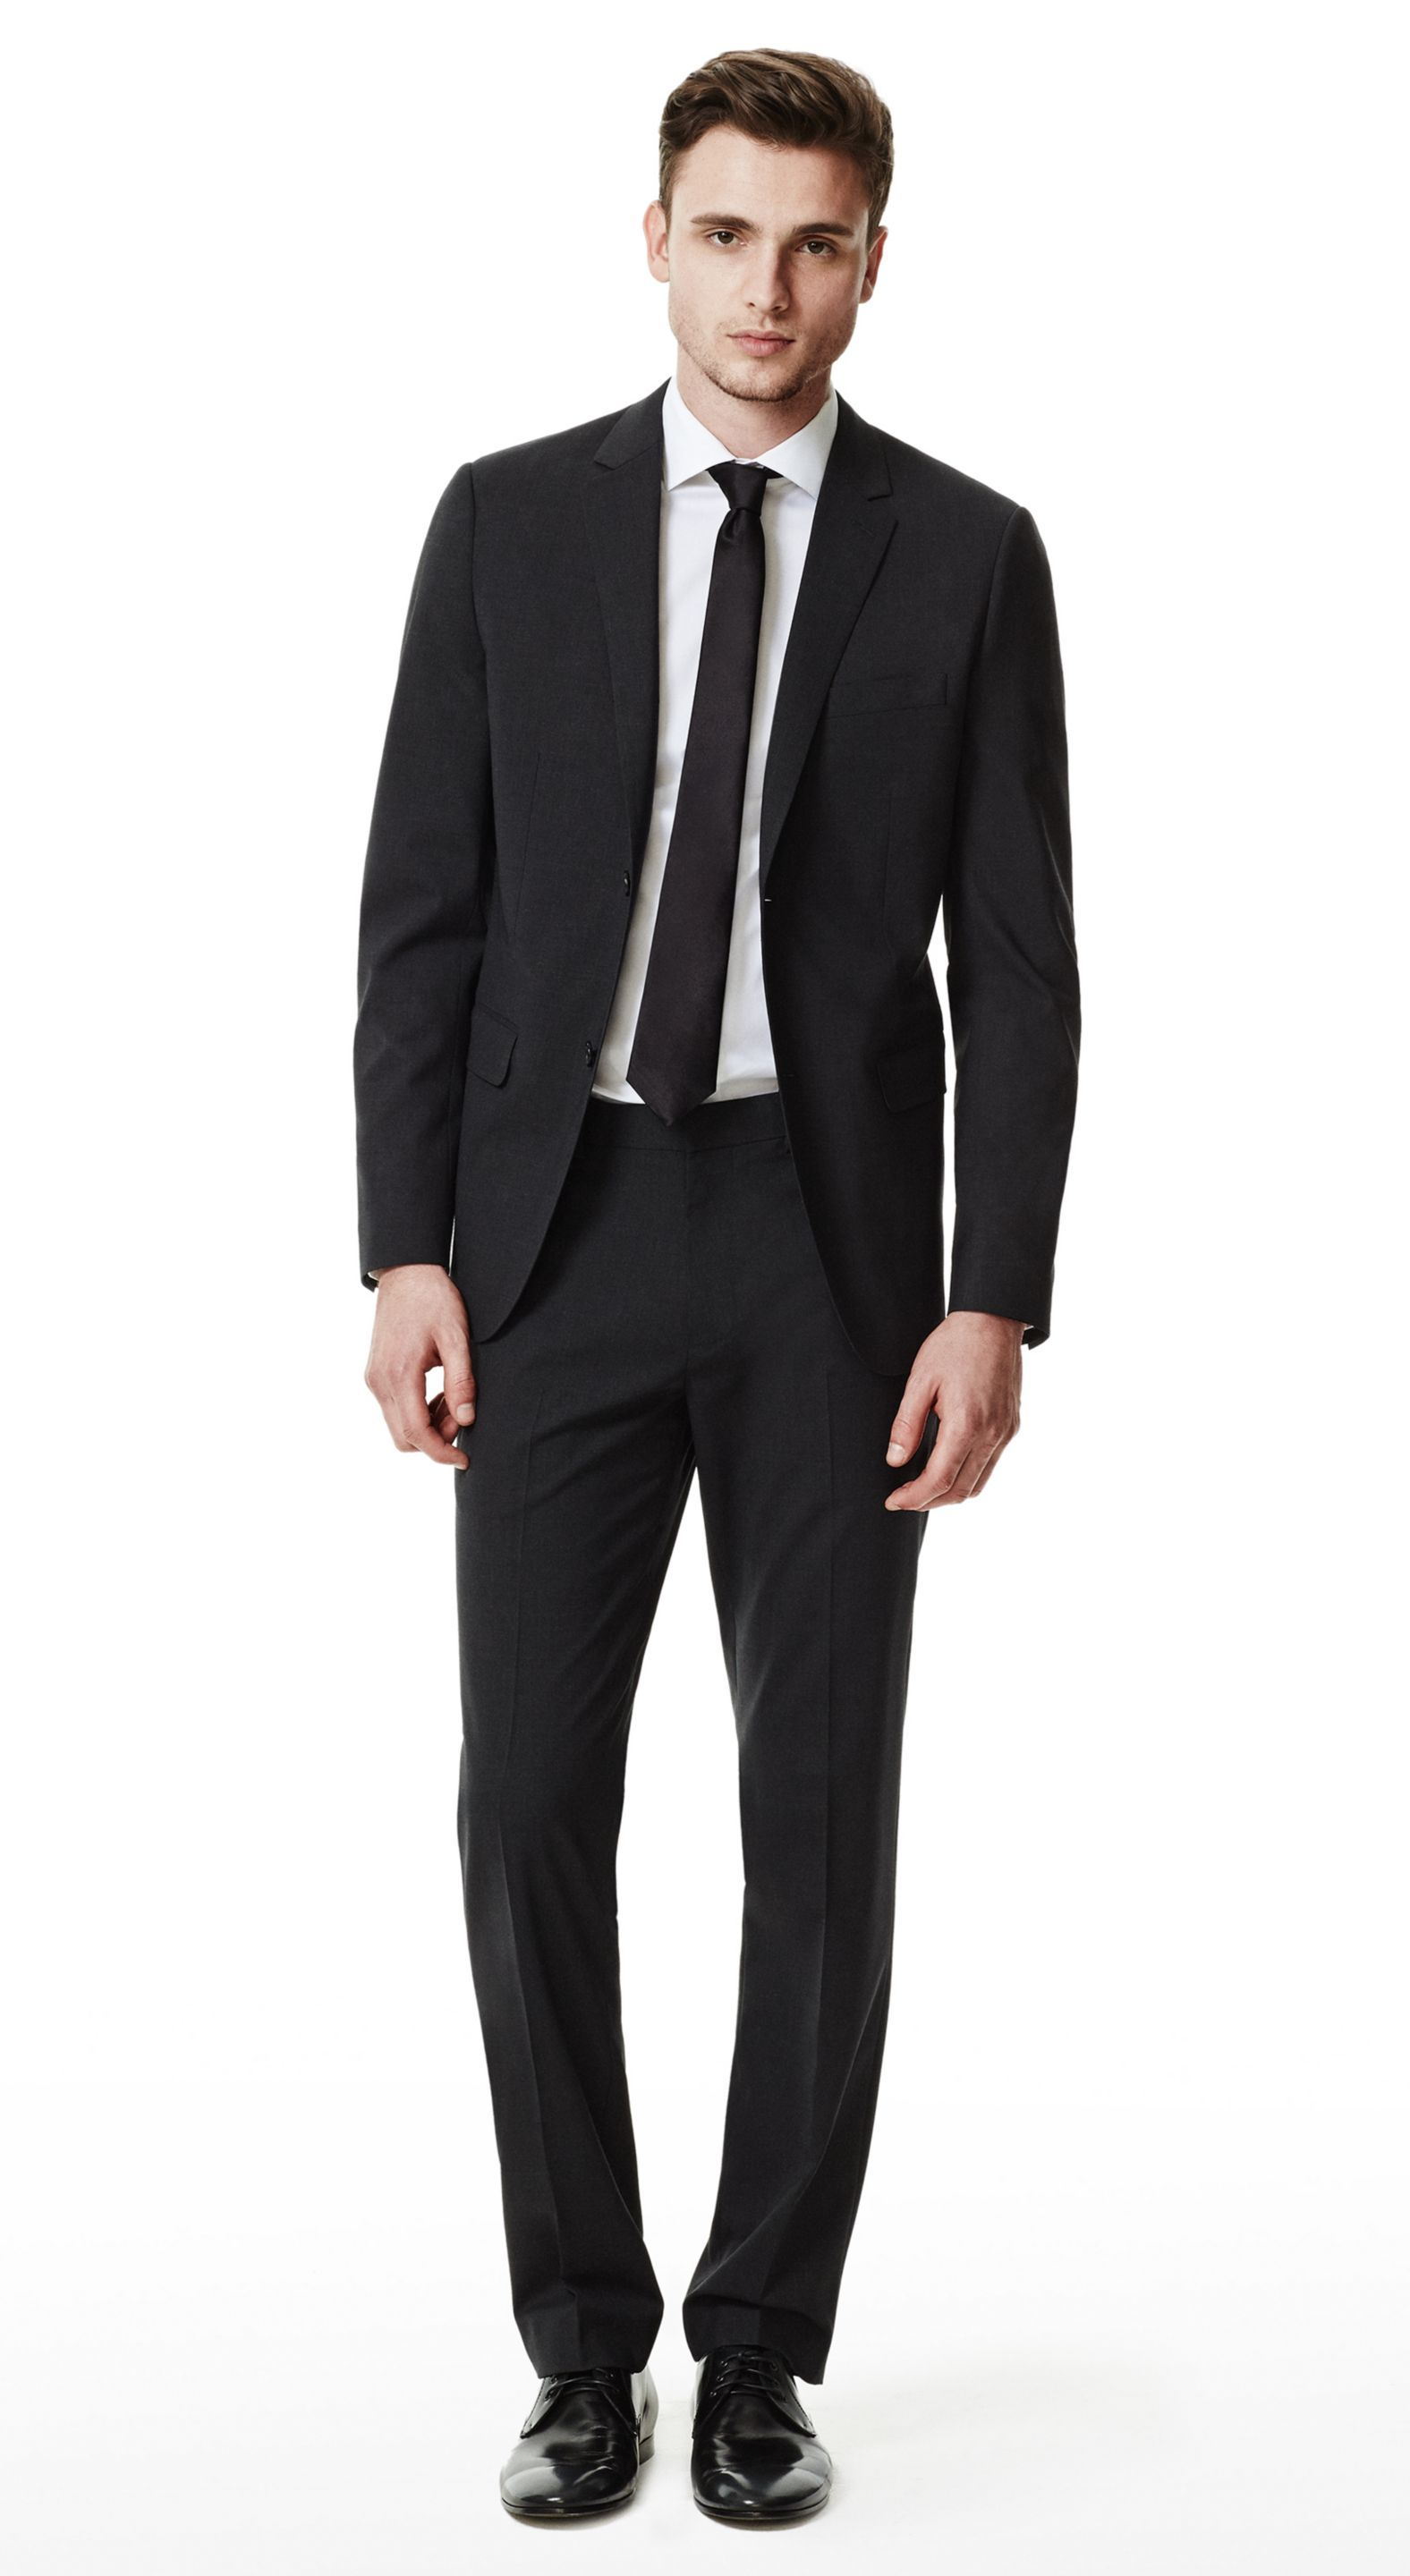 55c31a51 THEORY Dark Charcoal Wellar HC Suit Jacket & Marlo Suit Pant in New Tailor  Wool Bistretch